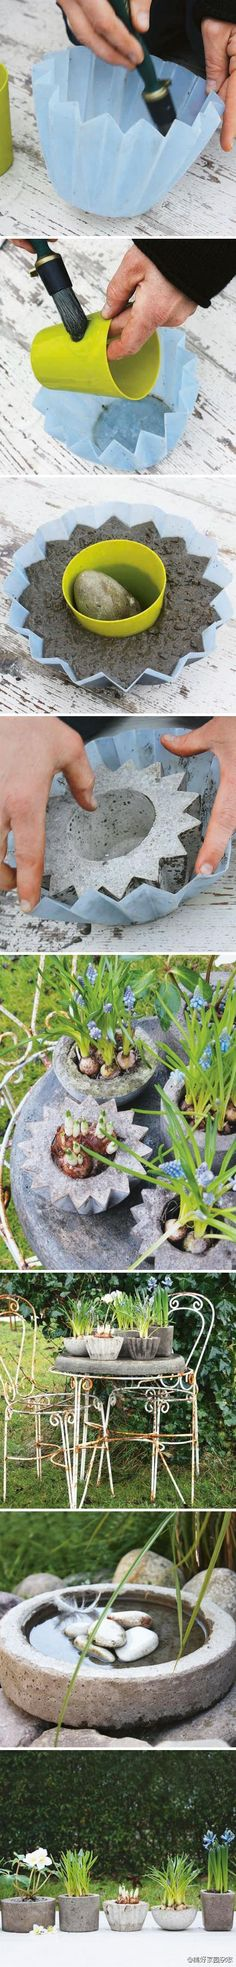 make your own cement planters